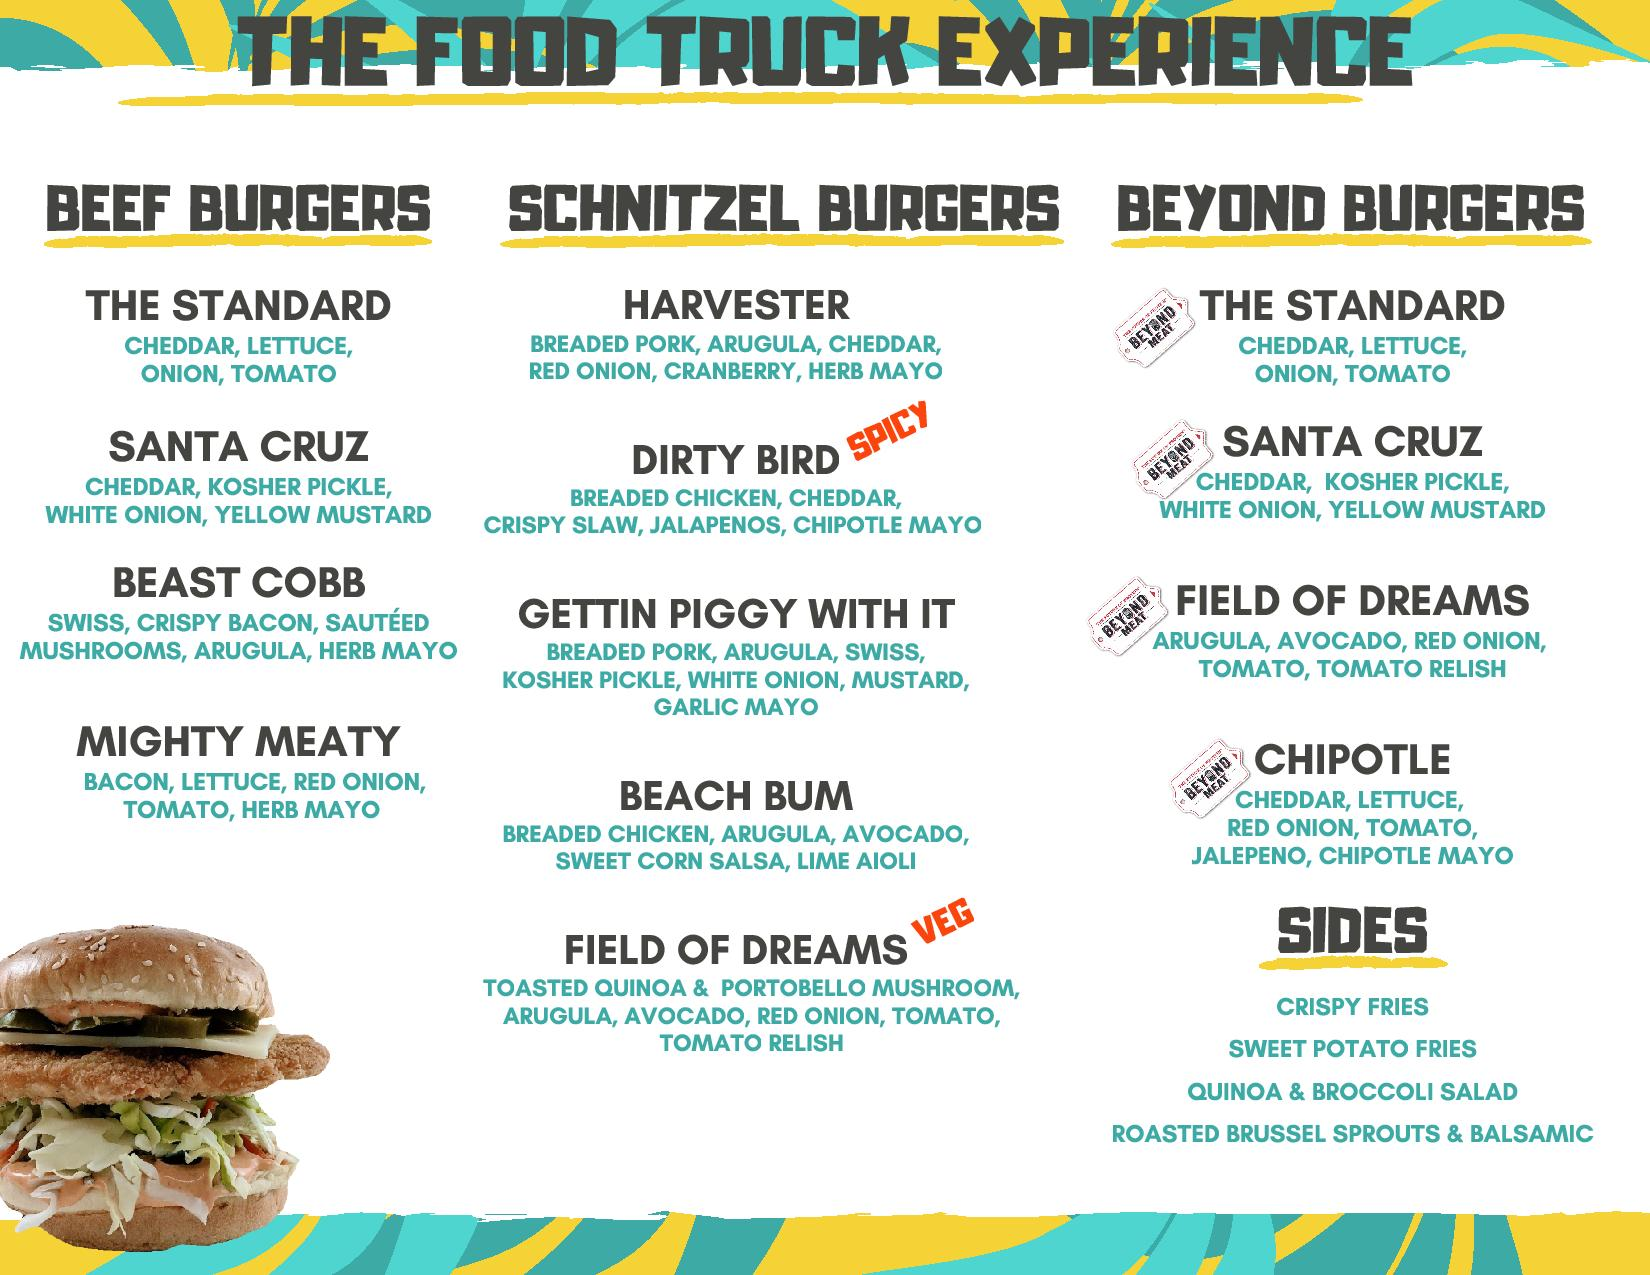 THE FOOD TRUCK EXPERIENCE MENU-page-001.jpg